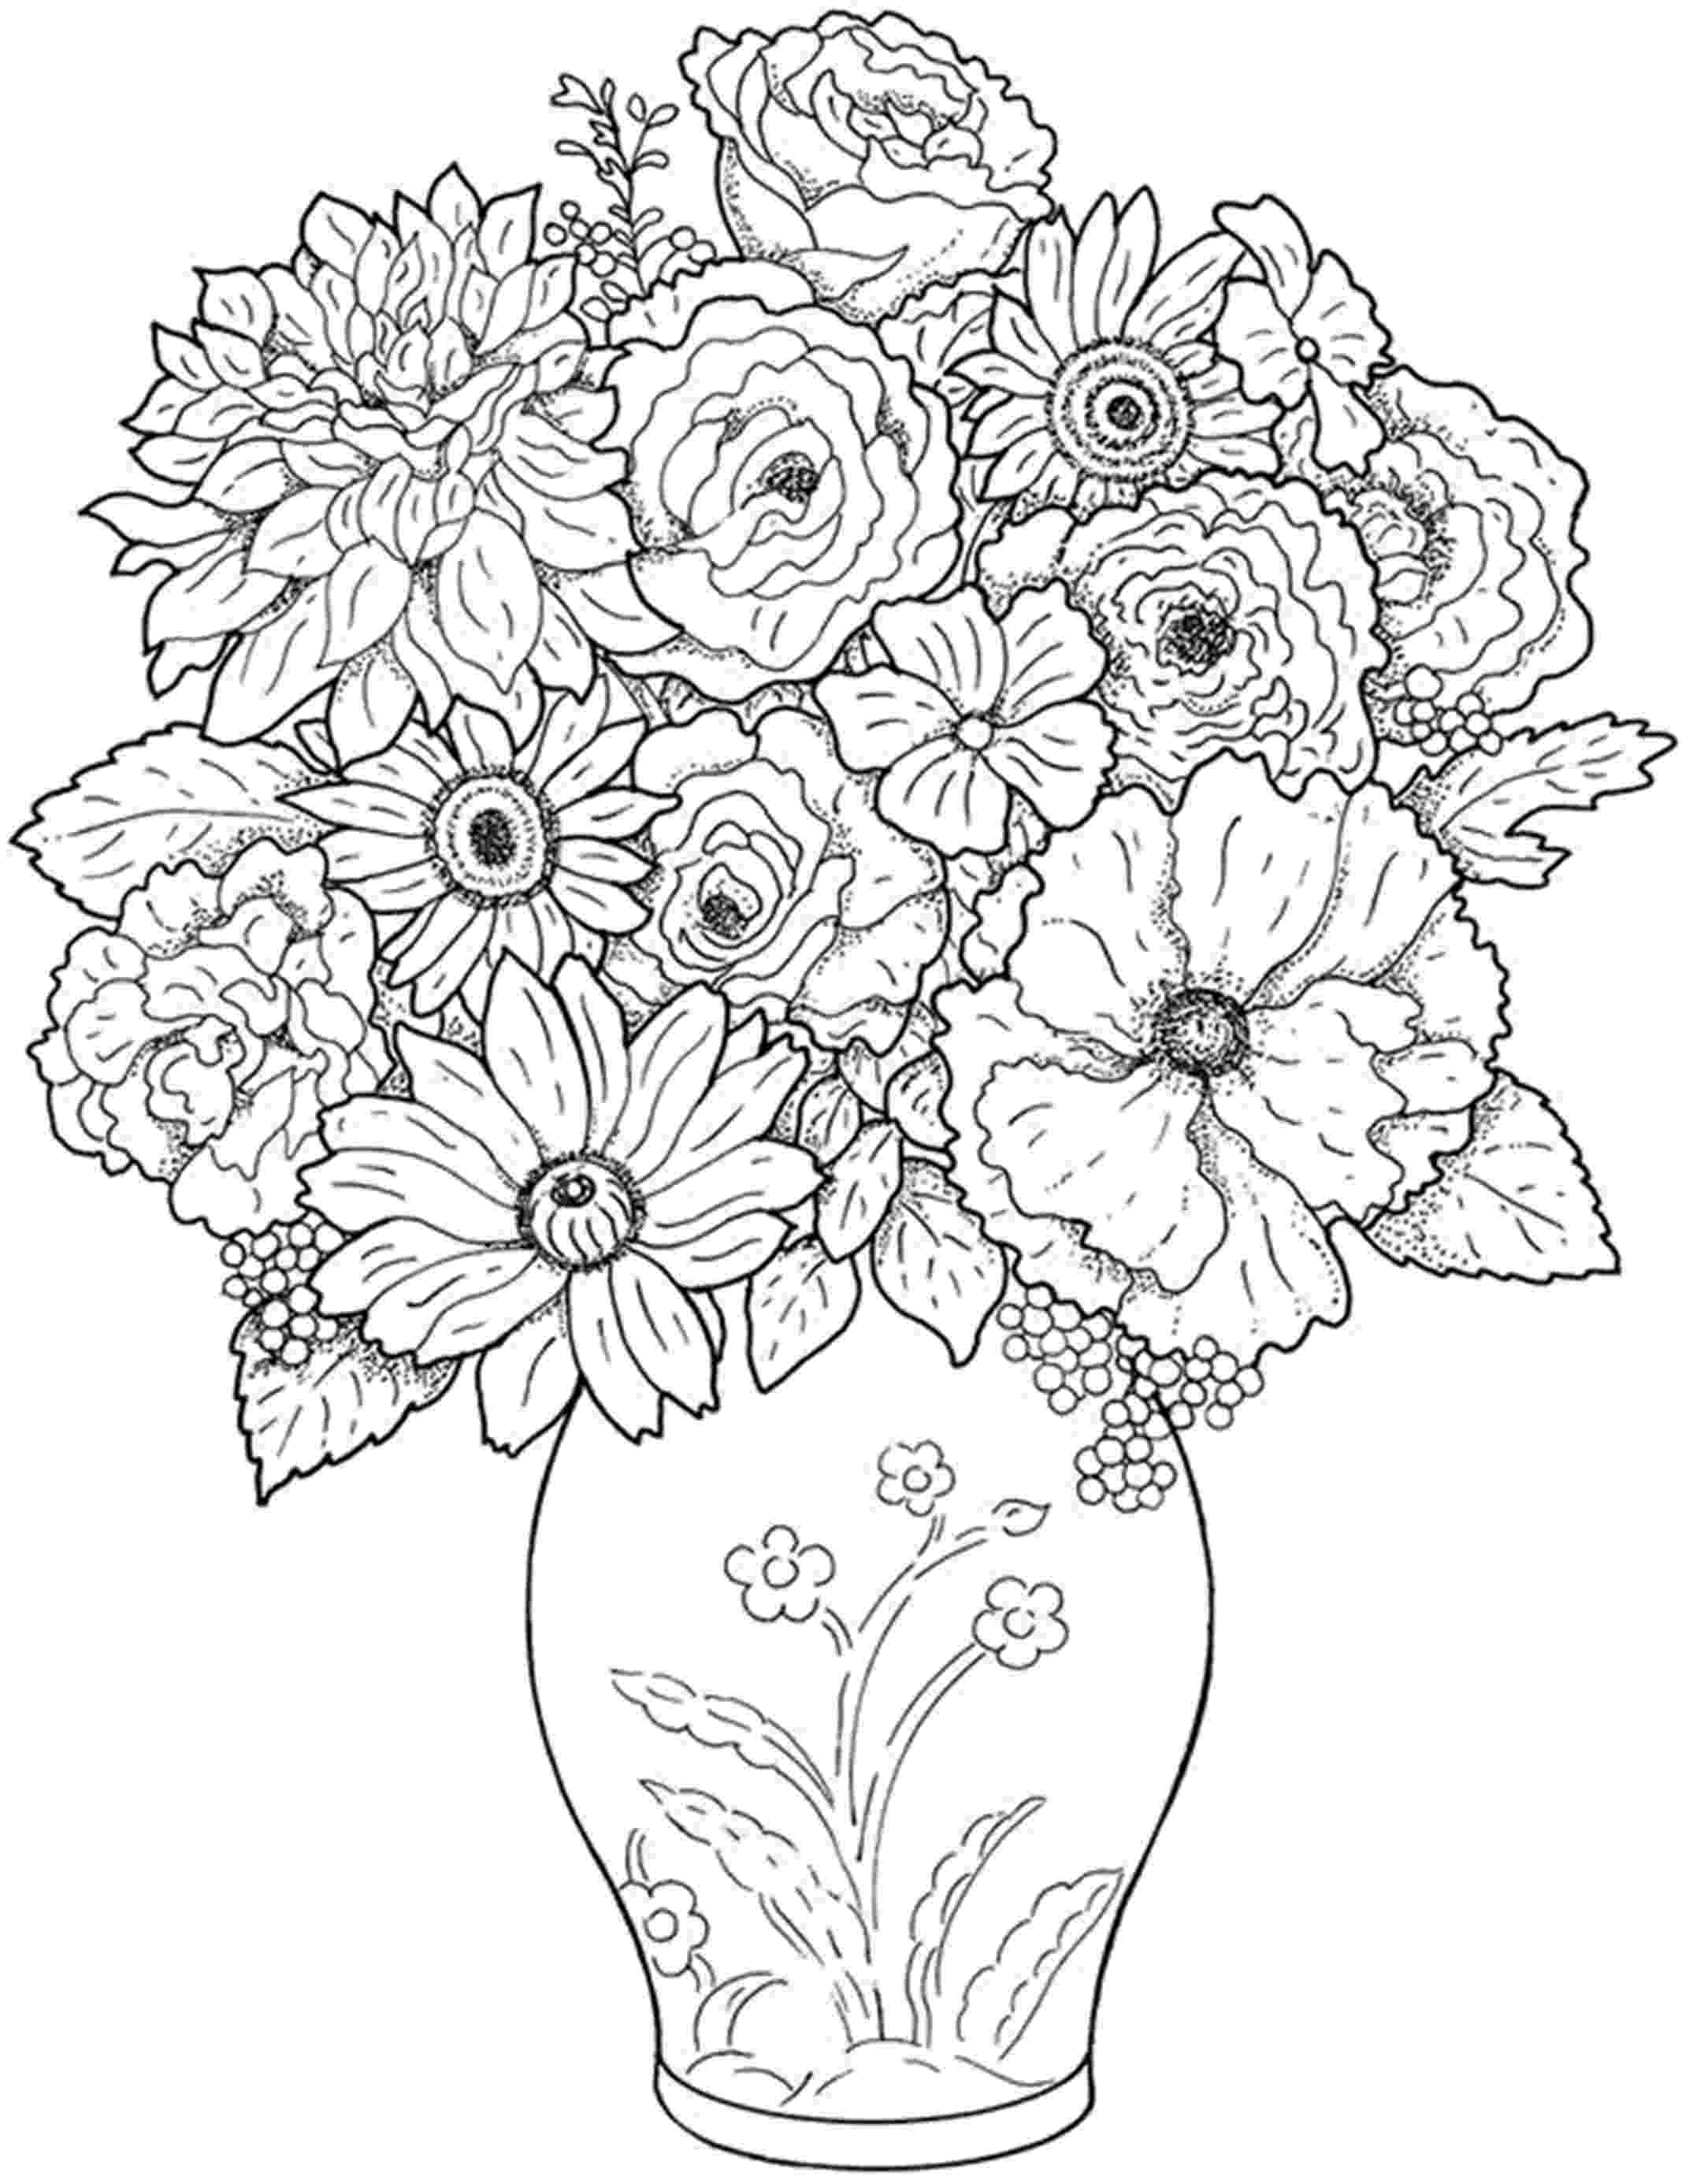 flower printable pictures free printable flower coloring pages for kids best printable pictures flower 1 5